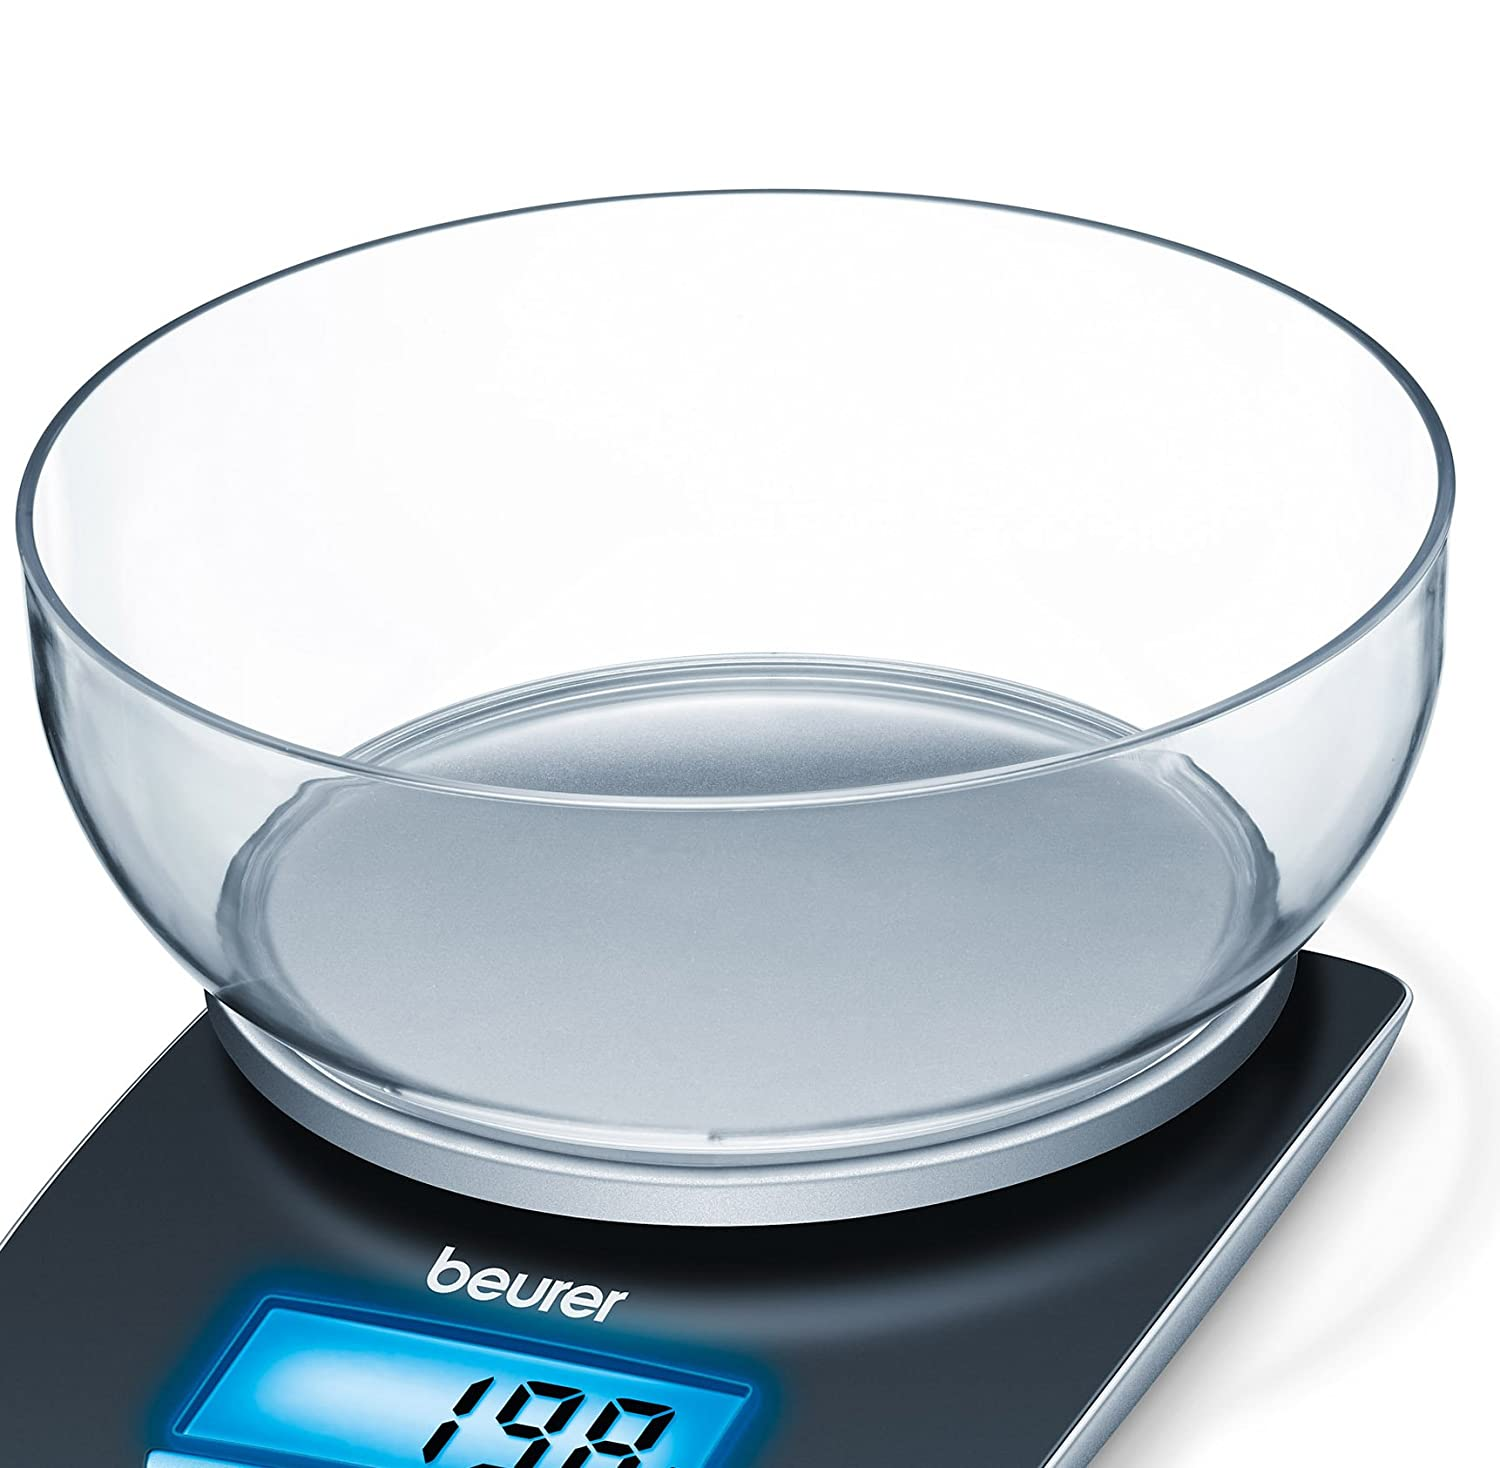 Beurer KS25 Kitchen Scales with Bowl and Illuminated Display: Amazon ...